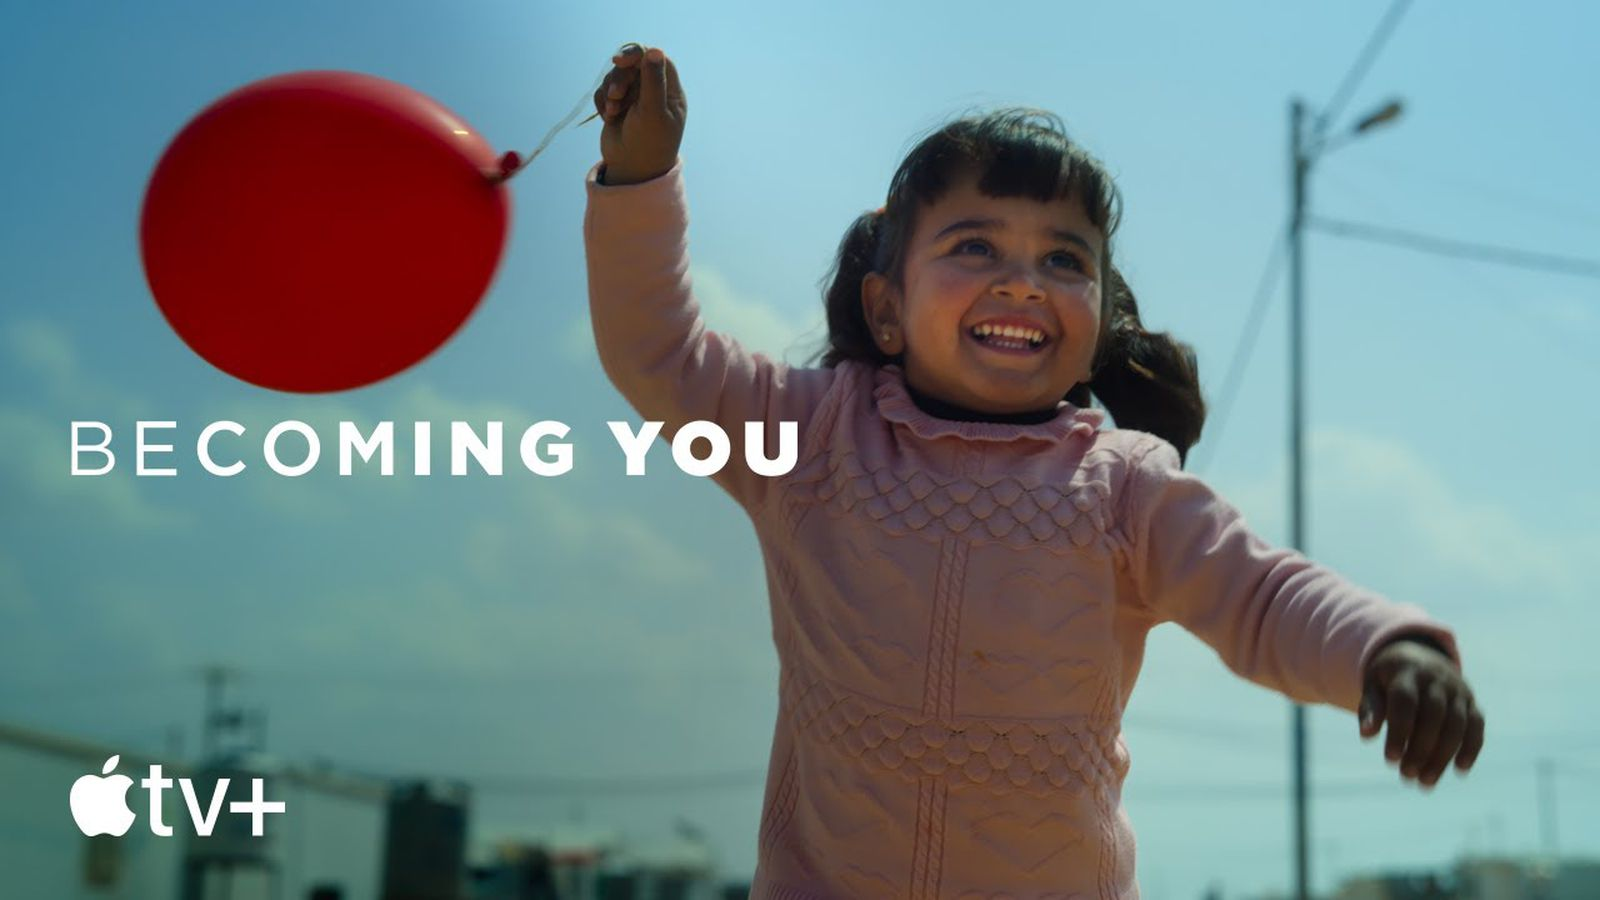 photo of Apple Shares Trailer for Apple TV+ Documentary 'Becoming You' image